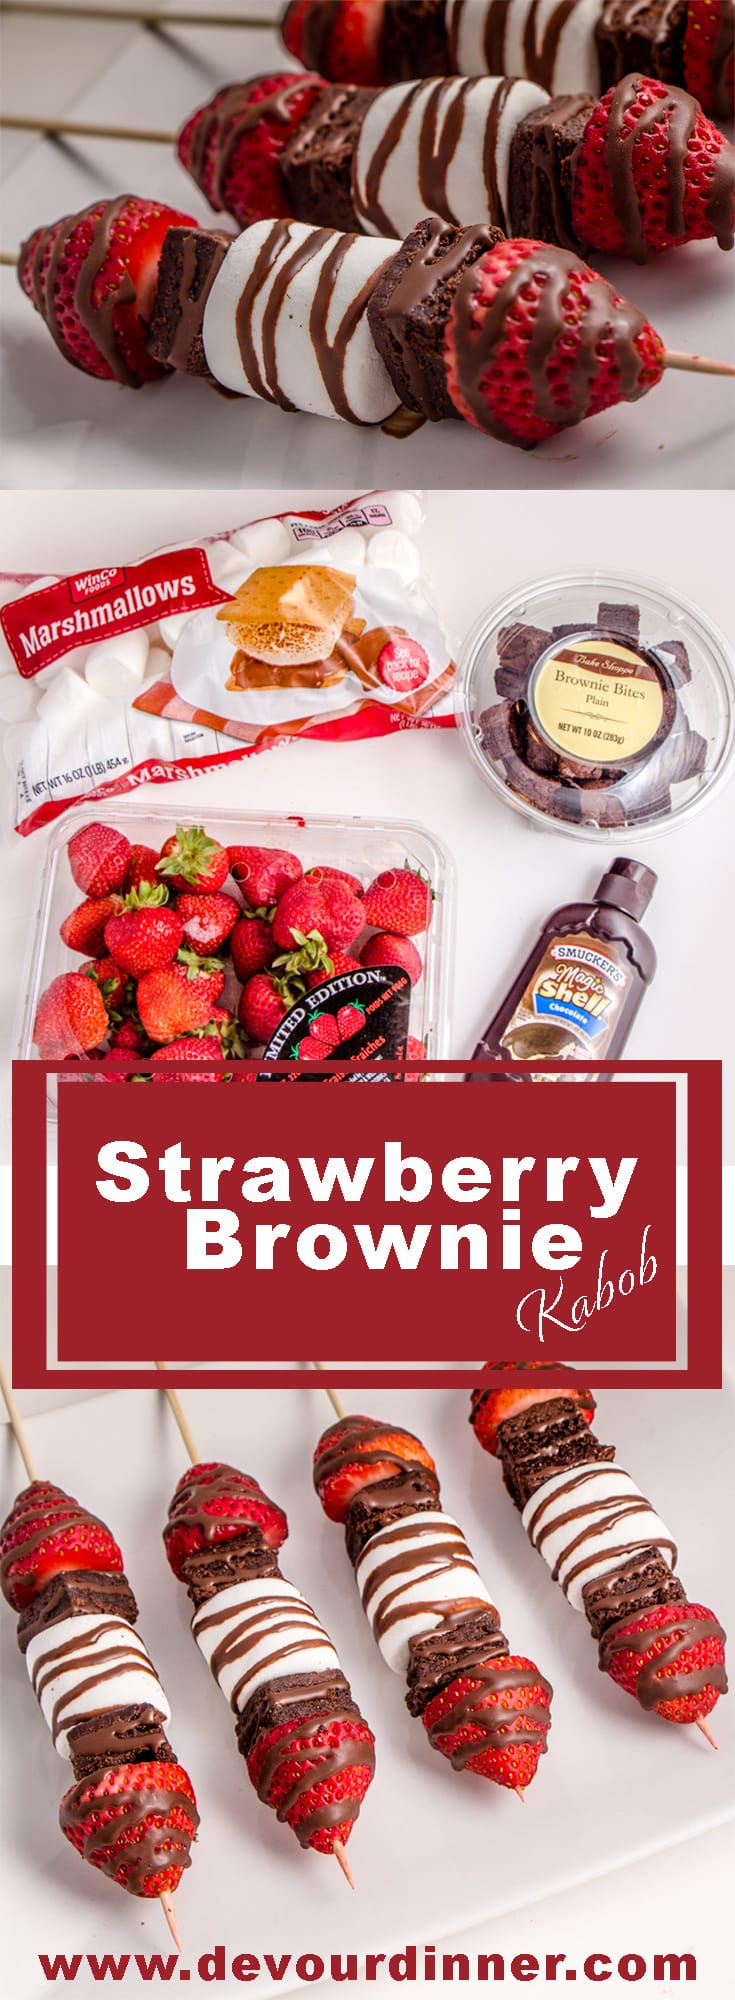 Strawberry Brownie Kabobs - Devour Dinner. So easy, even the kids can make. Fun Valentines Treat. #DevourDinner #Recipe #Recipes #Food #Foodies #Yum #Yummy #Strawberry #Brownie #StrawberryDessert #BrownieRecipe #BrownieDessert #EasyDessert #KabobDessert #Kabob #EasyDessert #EasyRecipe